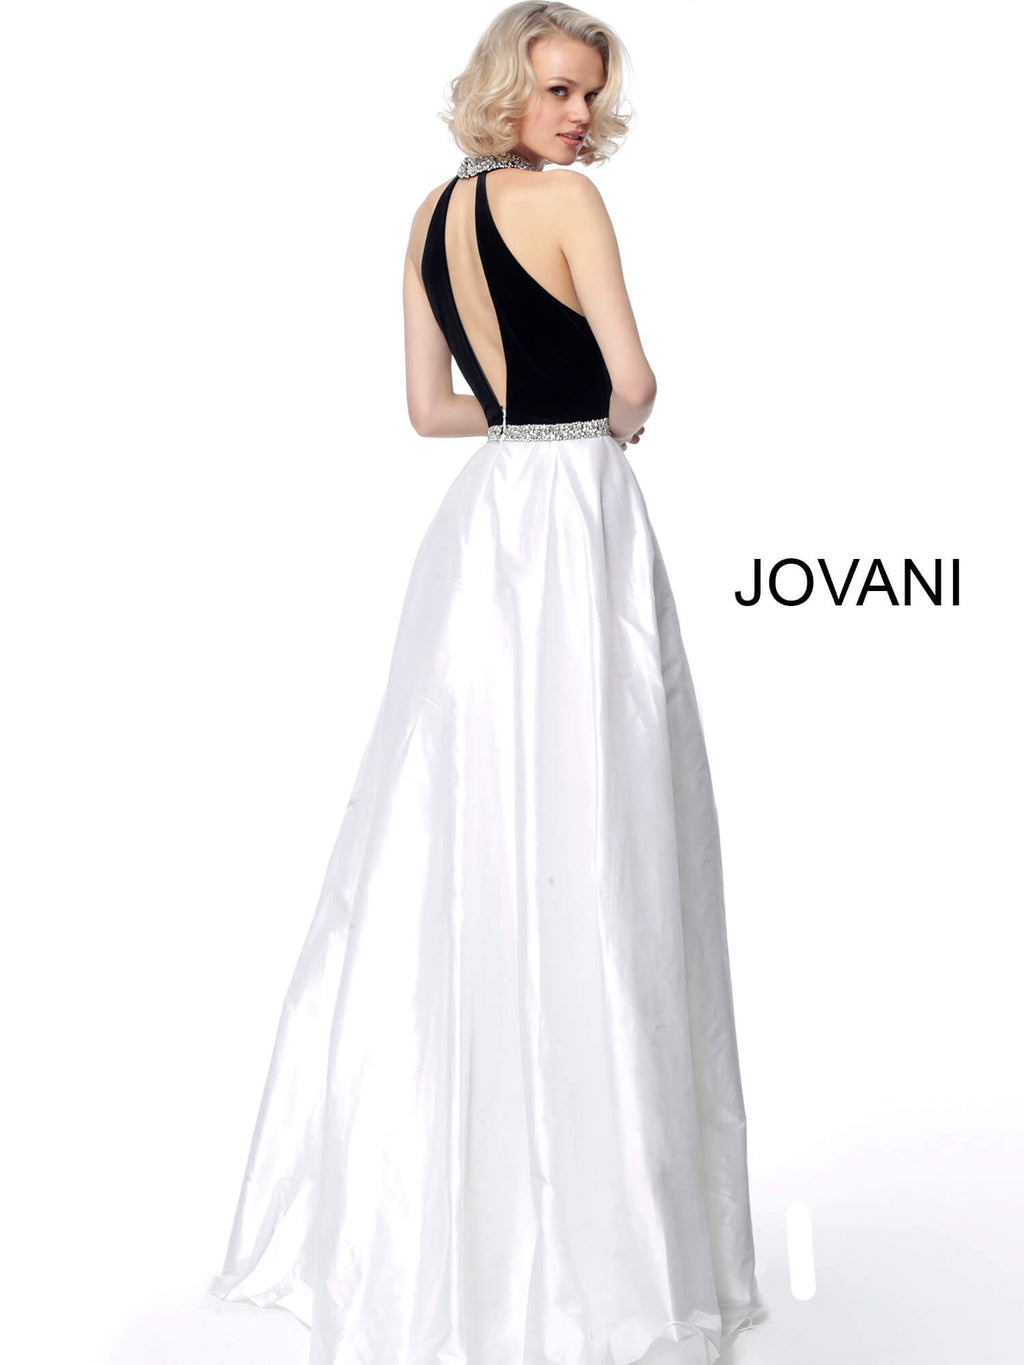 JOVANI 66295 Black White High Neck A Line Evening Dress 66295 - CYC Boutique